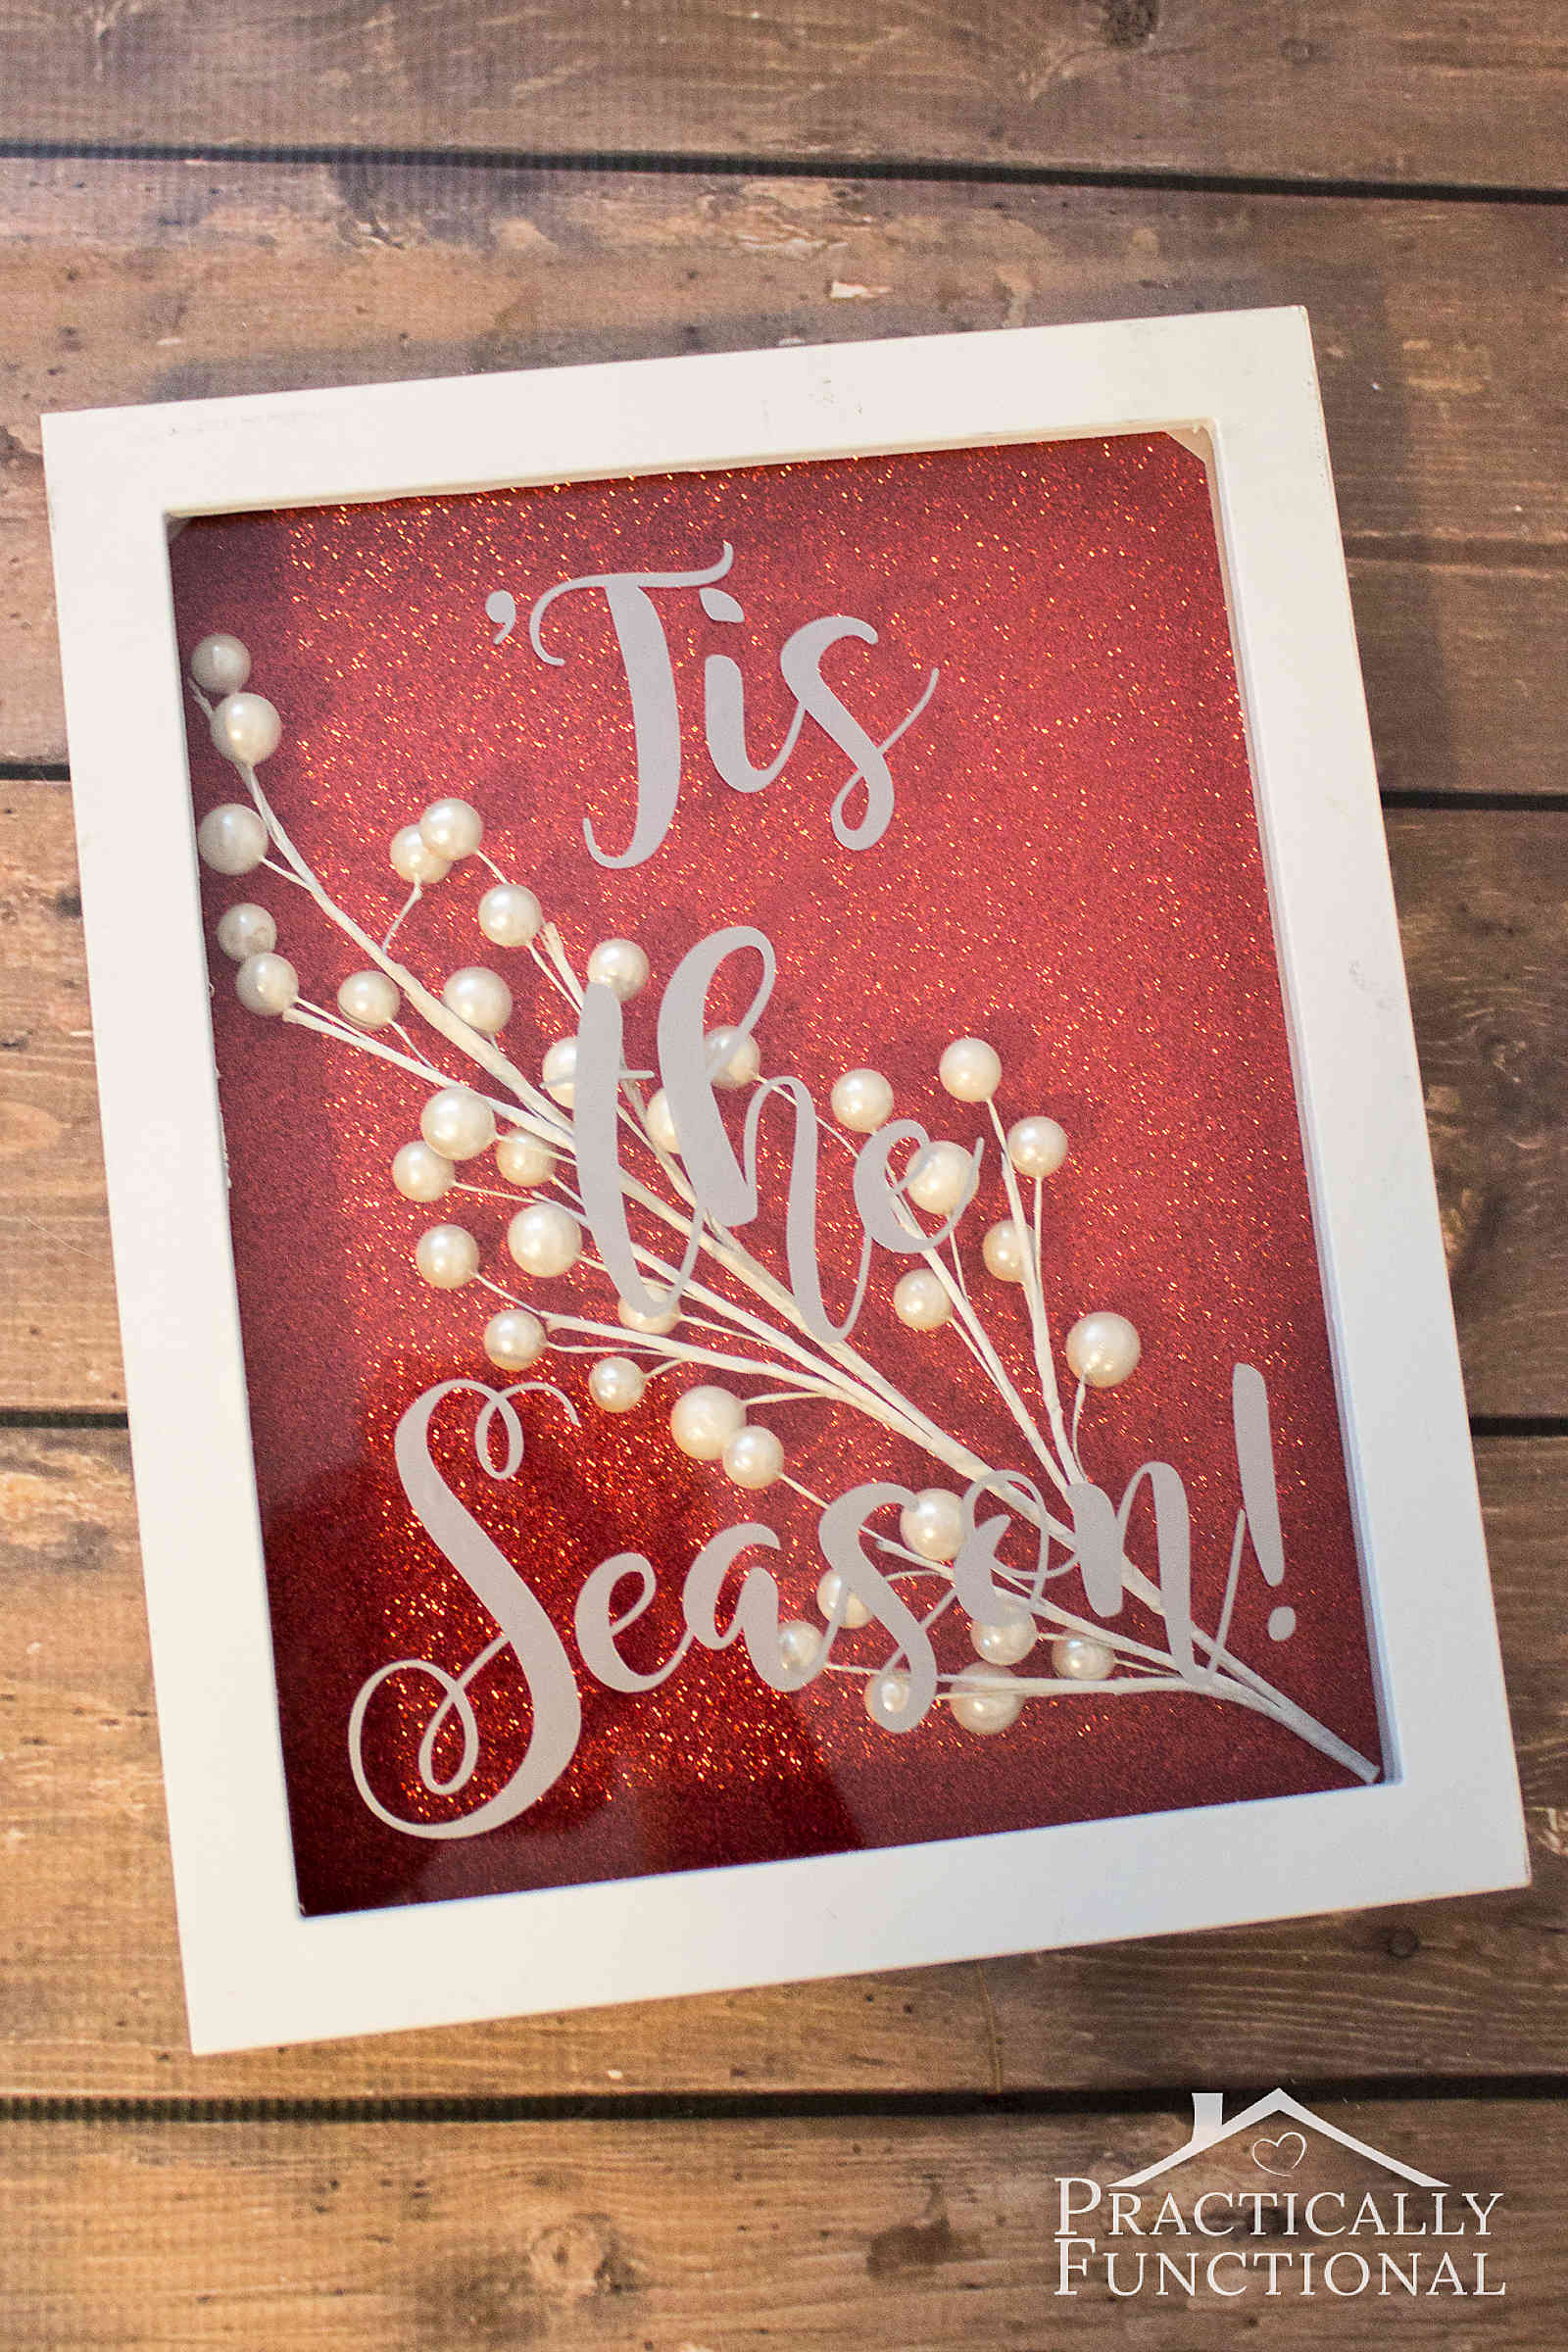 Gorgeous DIY 'Tis the season shadowbox! Great tutorial on how to customize your own shadowbox in under 15 minutes!